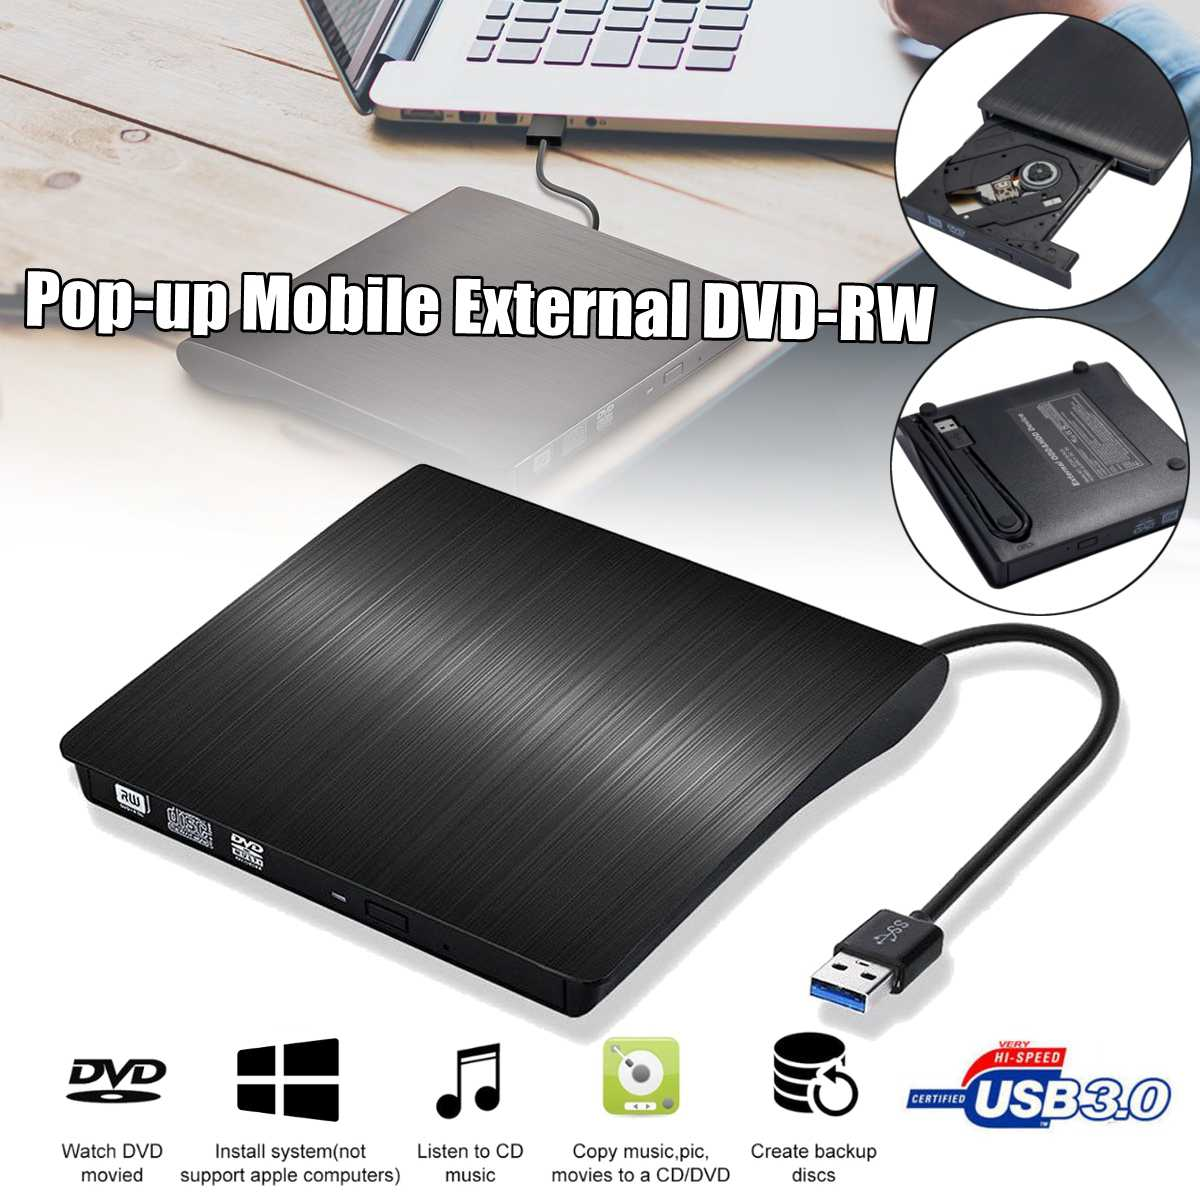 USB 3.0 Slim External DVD RW CD Writer Drive Burner Reader Player Optical Drives For PC Laptop